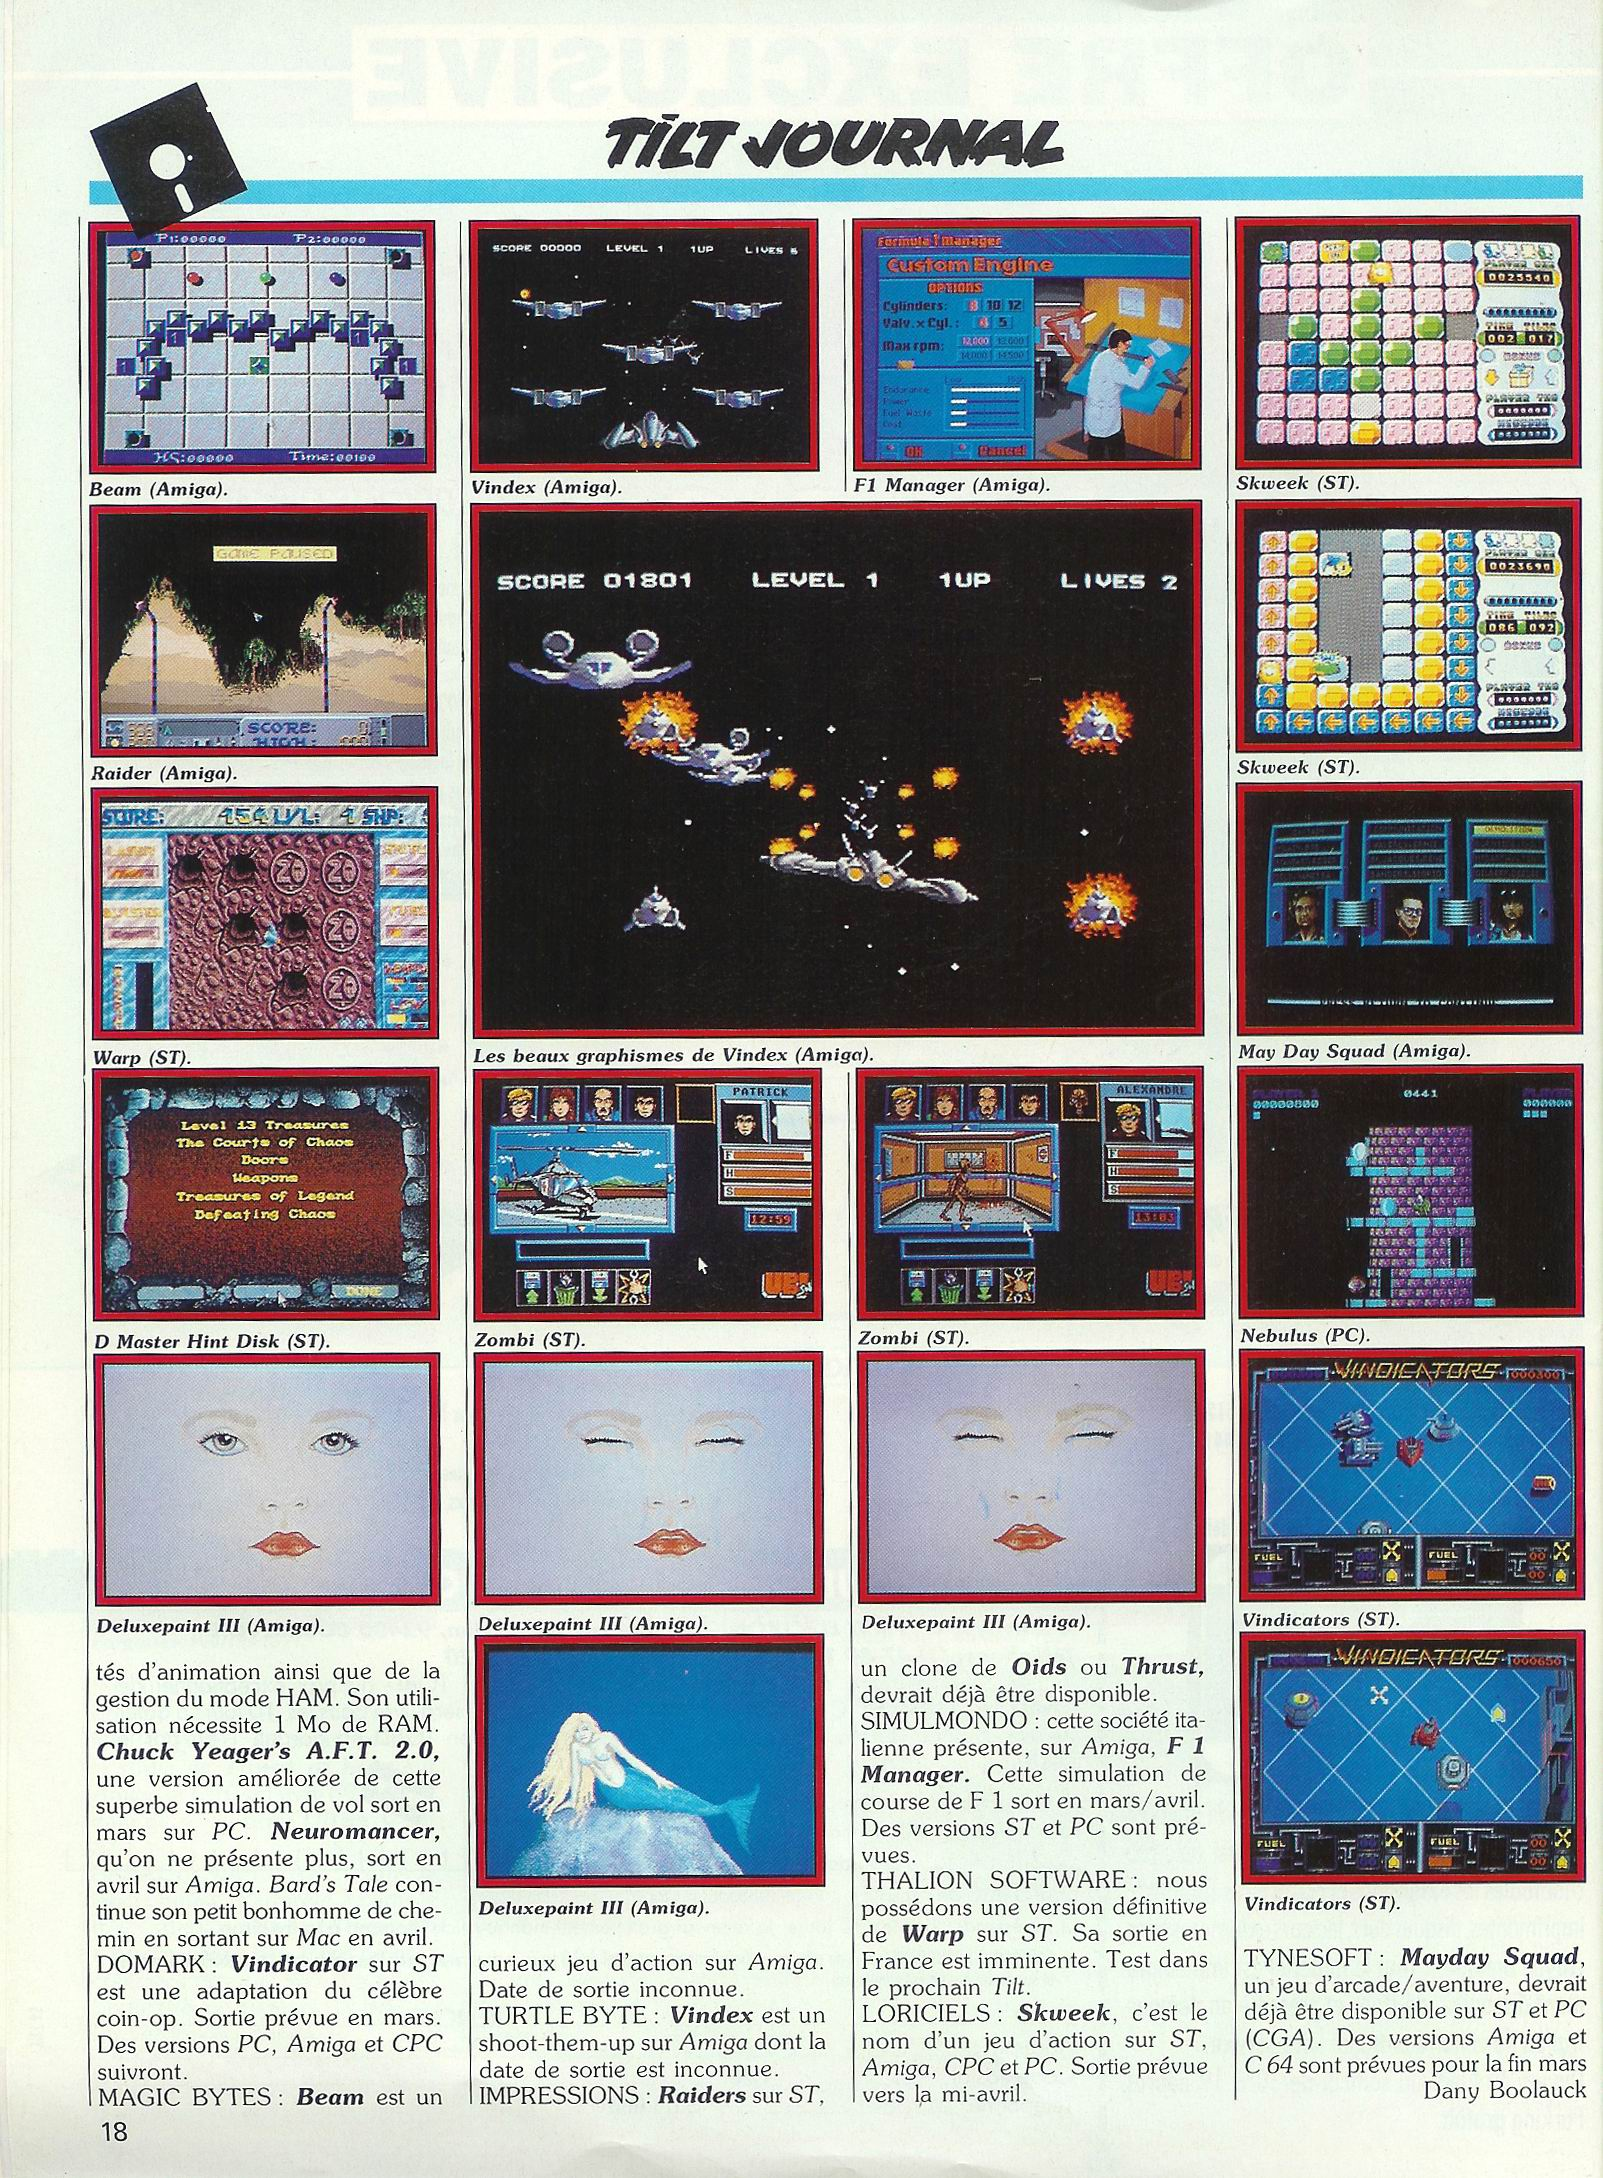 Dungeon Master Hint Disk screenshot published in French TILT Magazine #65 (April 1989) on page 18